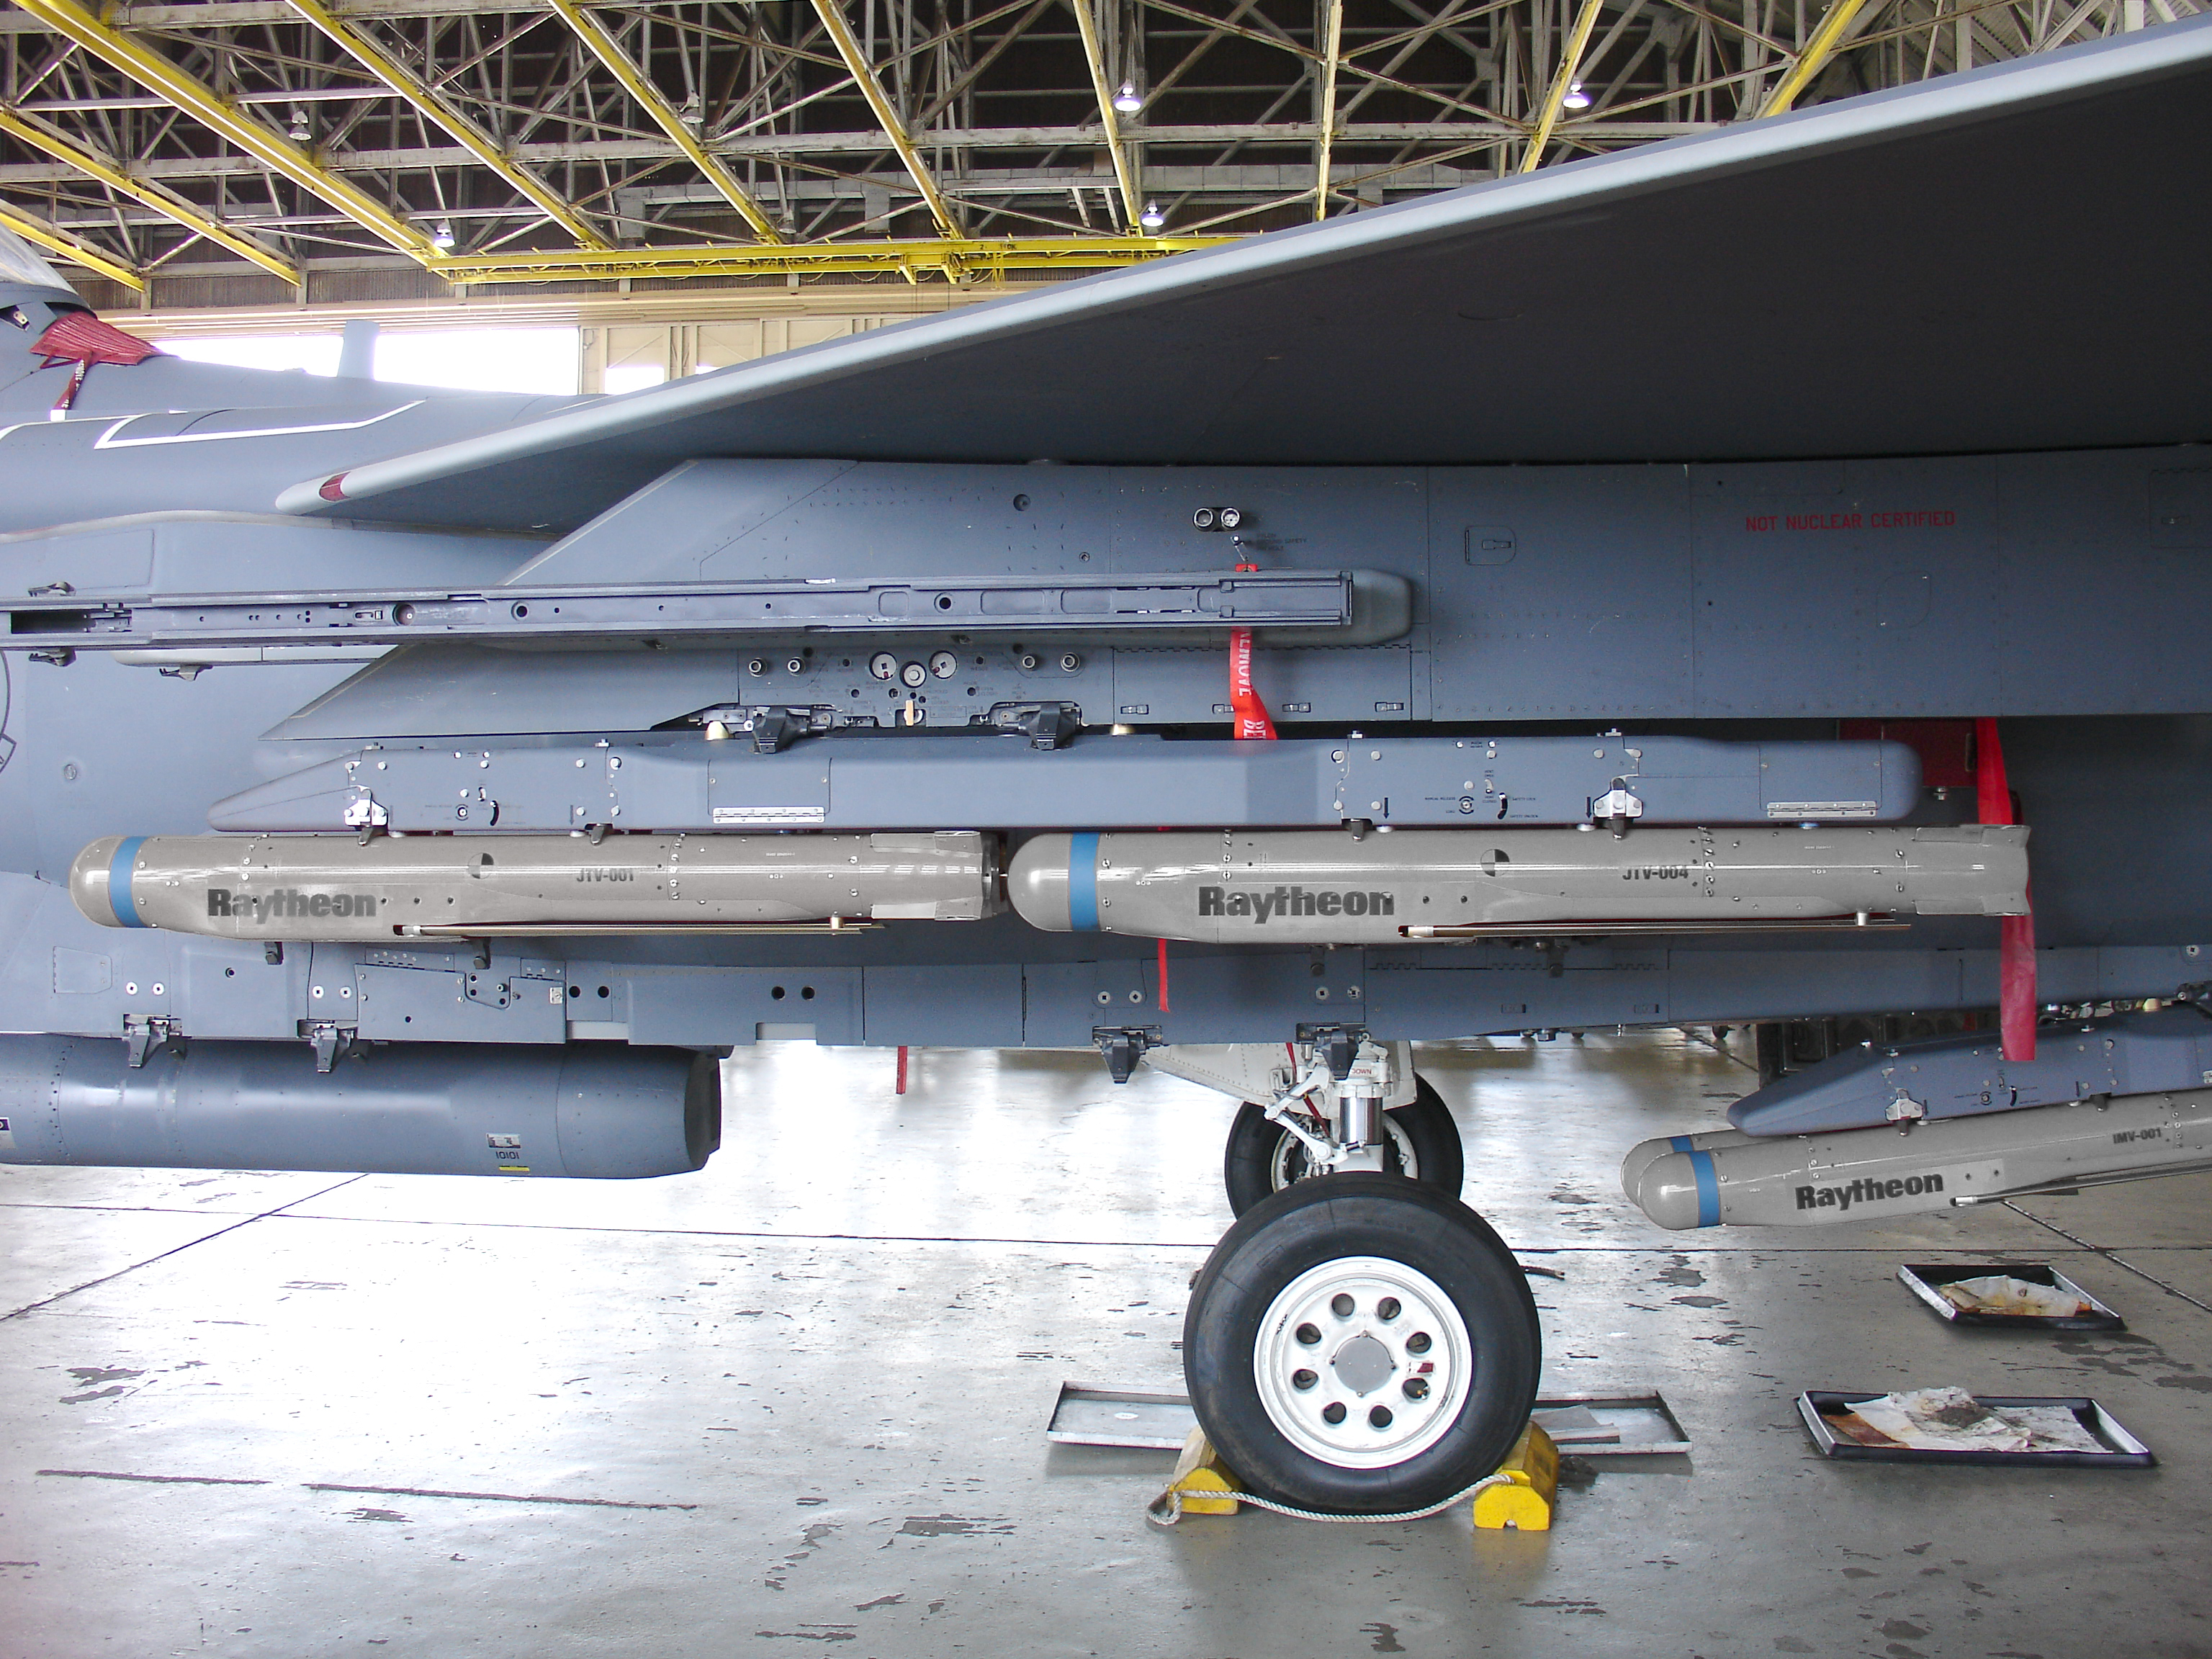 Locked and loaded, the F-15E fighter aircraft can carry seven groups of four StormBreaker™ smart weapons, for a total of 28 munitions.